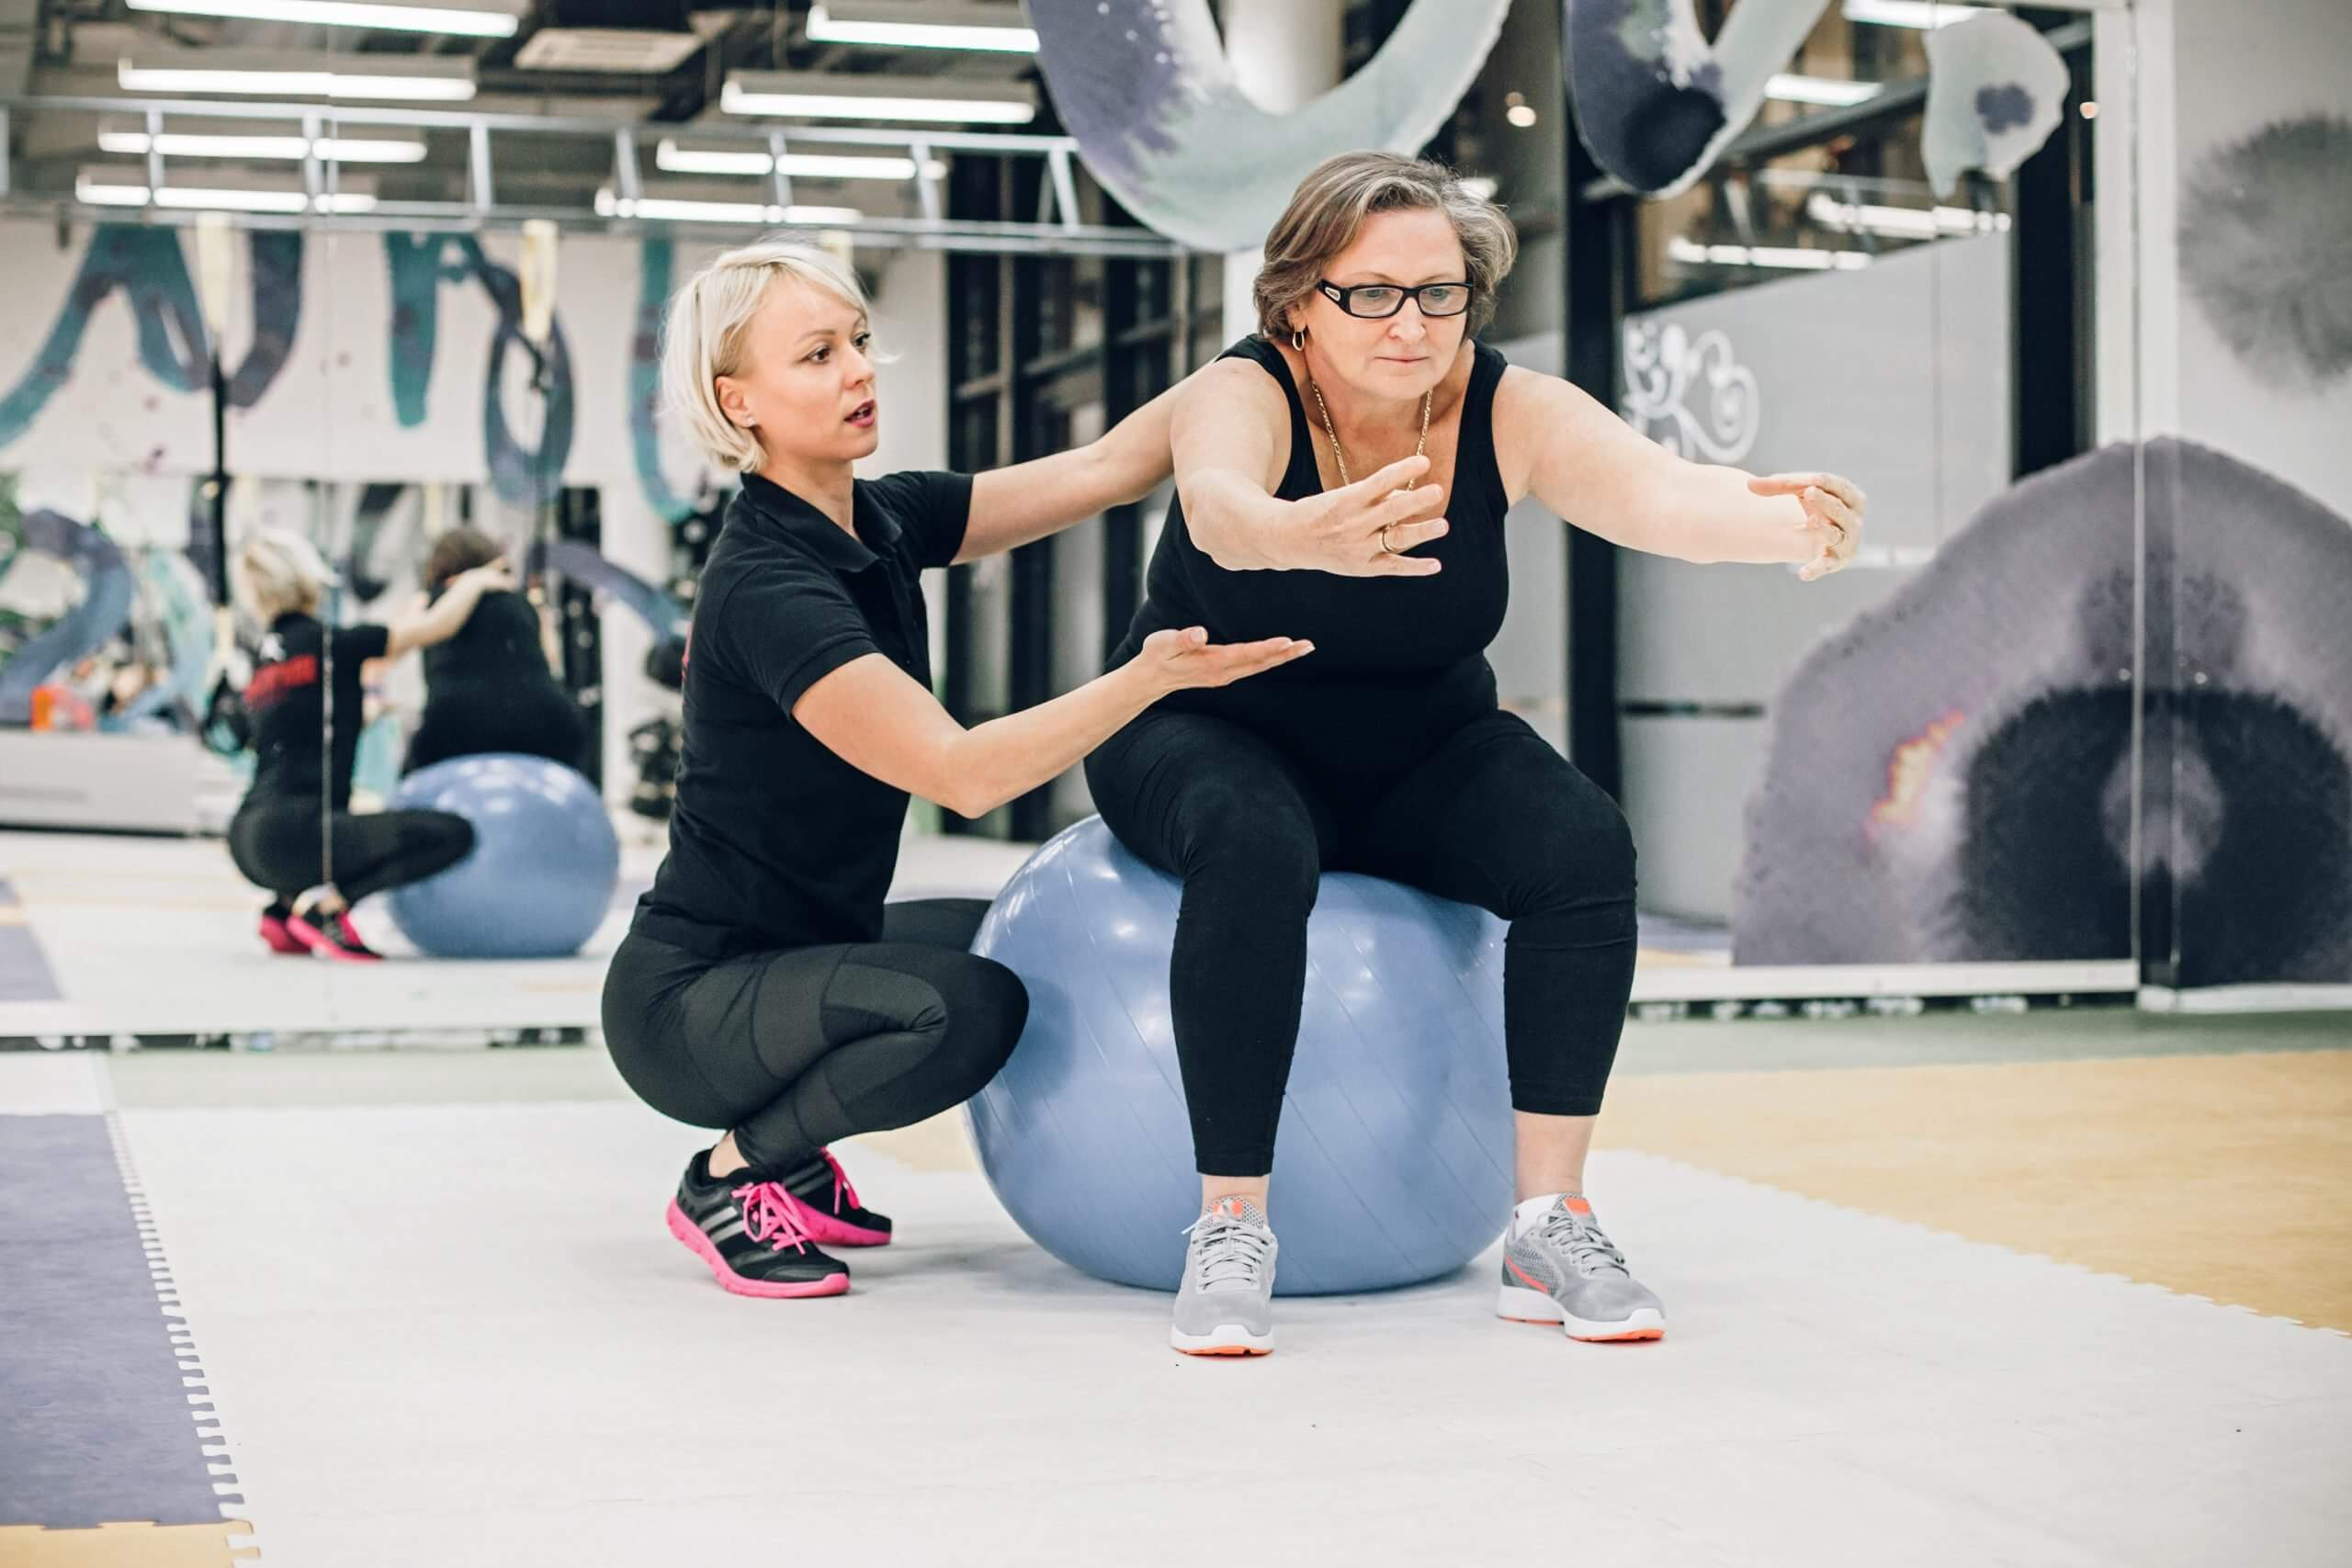 exercising with a personal trainer on a fitness ball